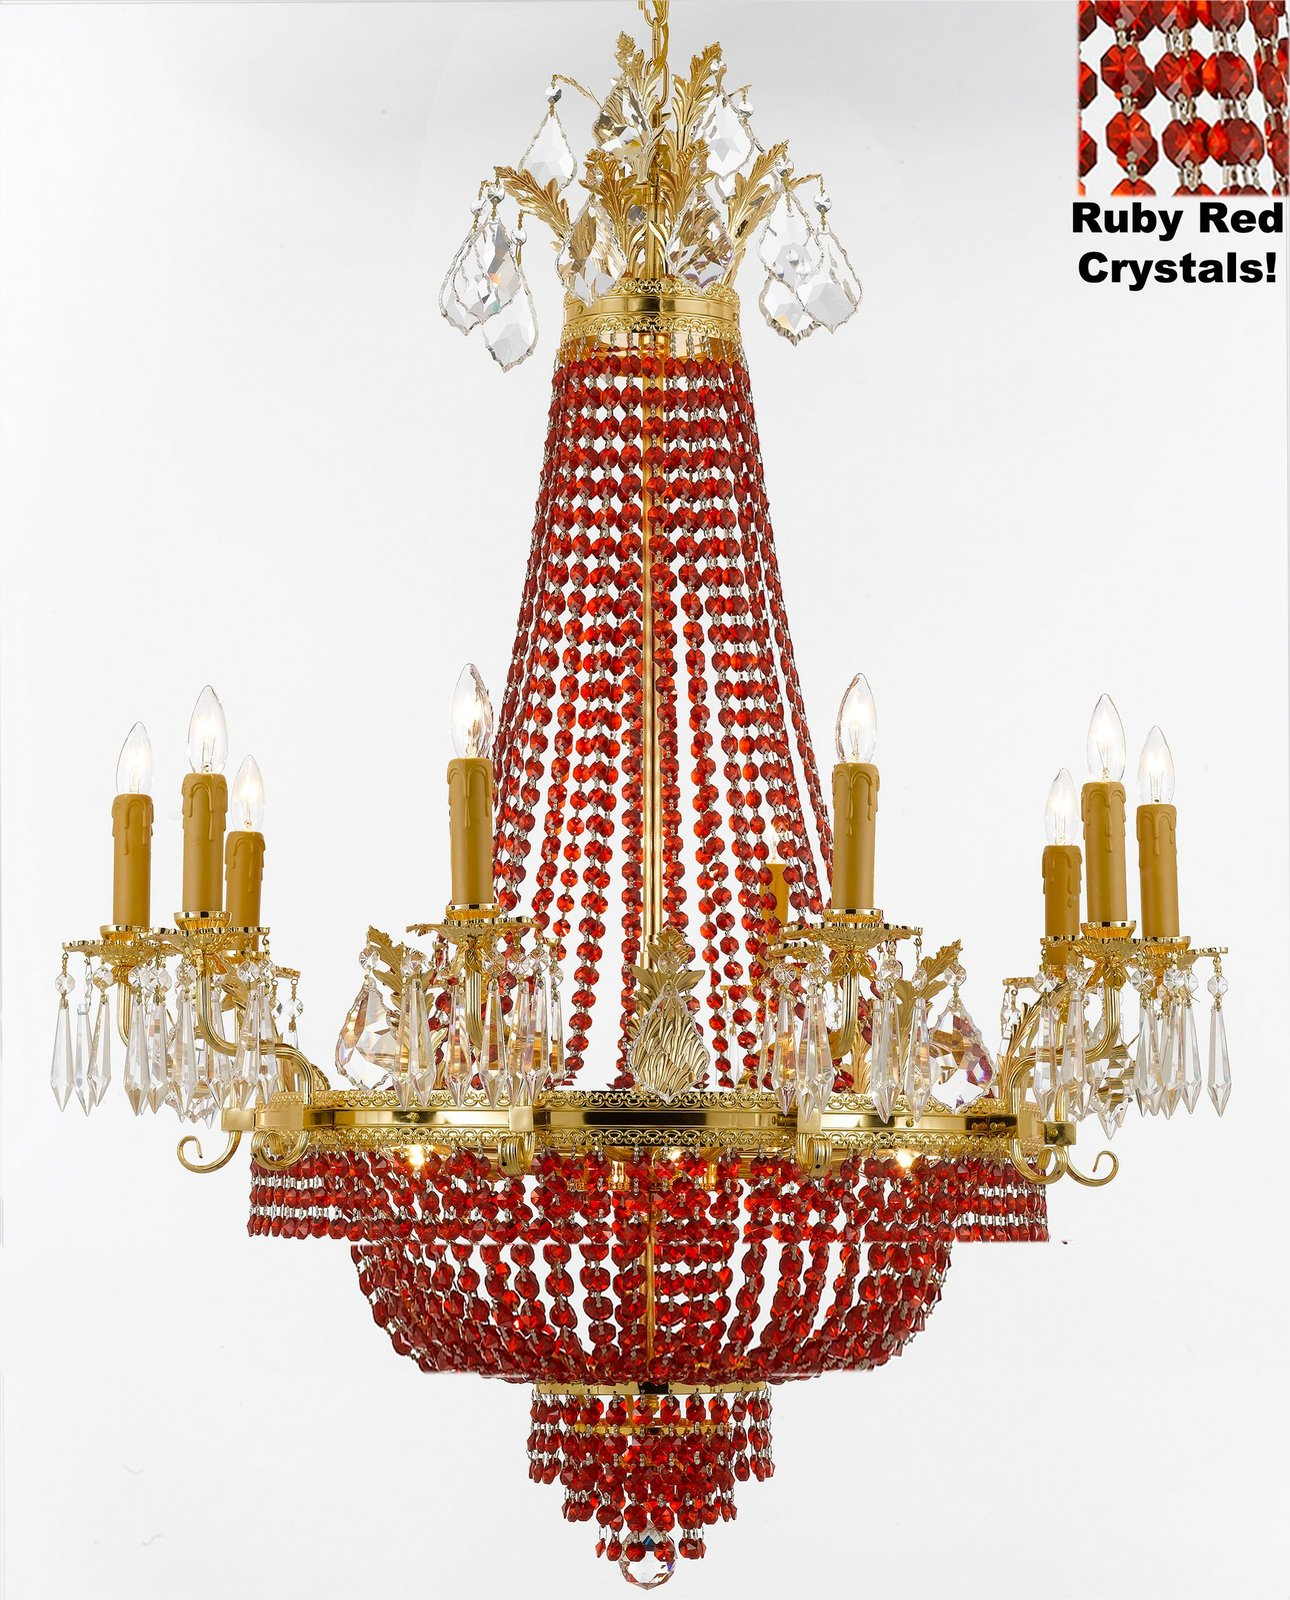 French Empire Crystal Chandelier Chandeliers H32 W25 Dressed With Ruby Red Cry